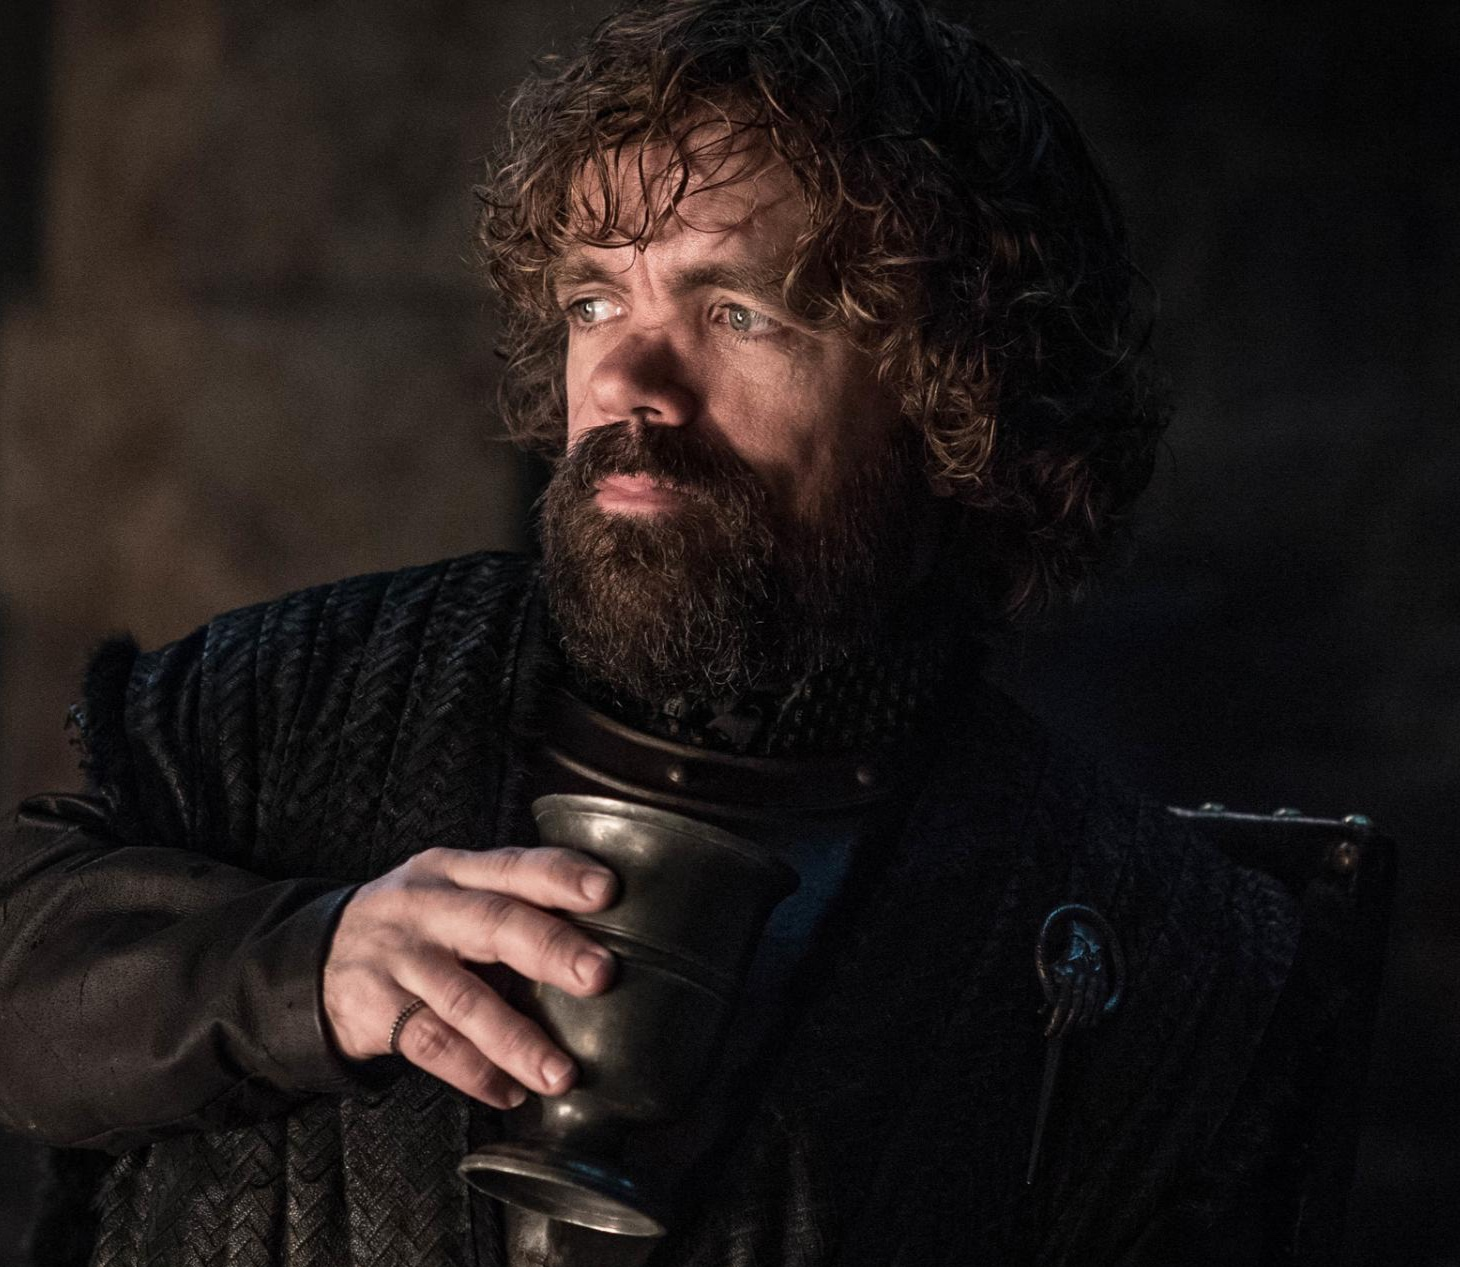 Peter Dinklage as Tyrion during Season 8's most action-packed scene so far